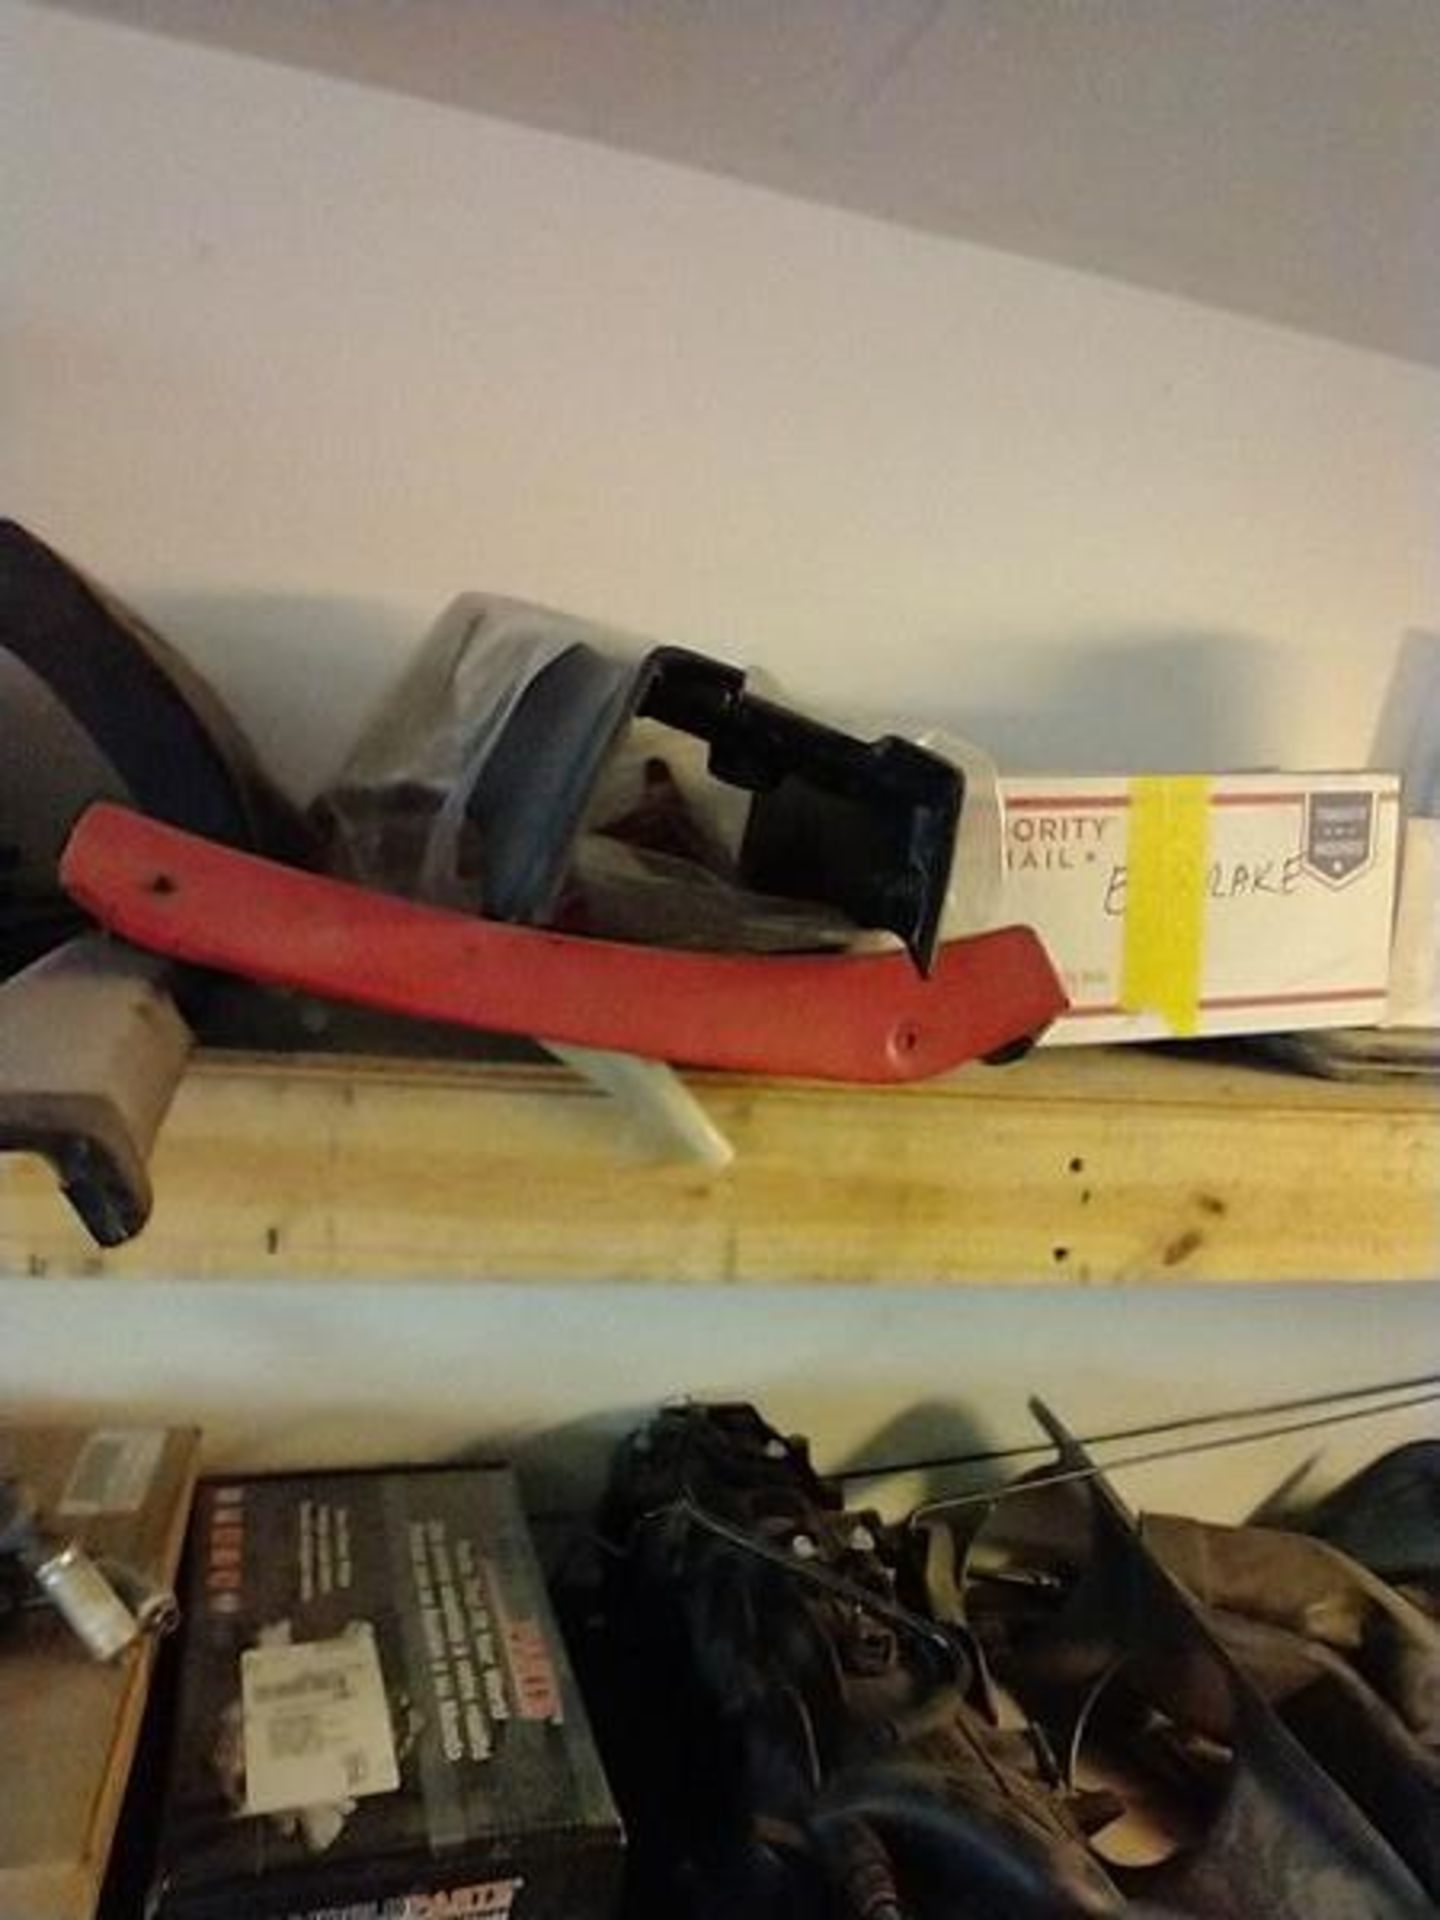 LOT OF ASSORTED CAR PARTS ON 2 SHELVES AND FLOOR - Image 7 of 23